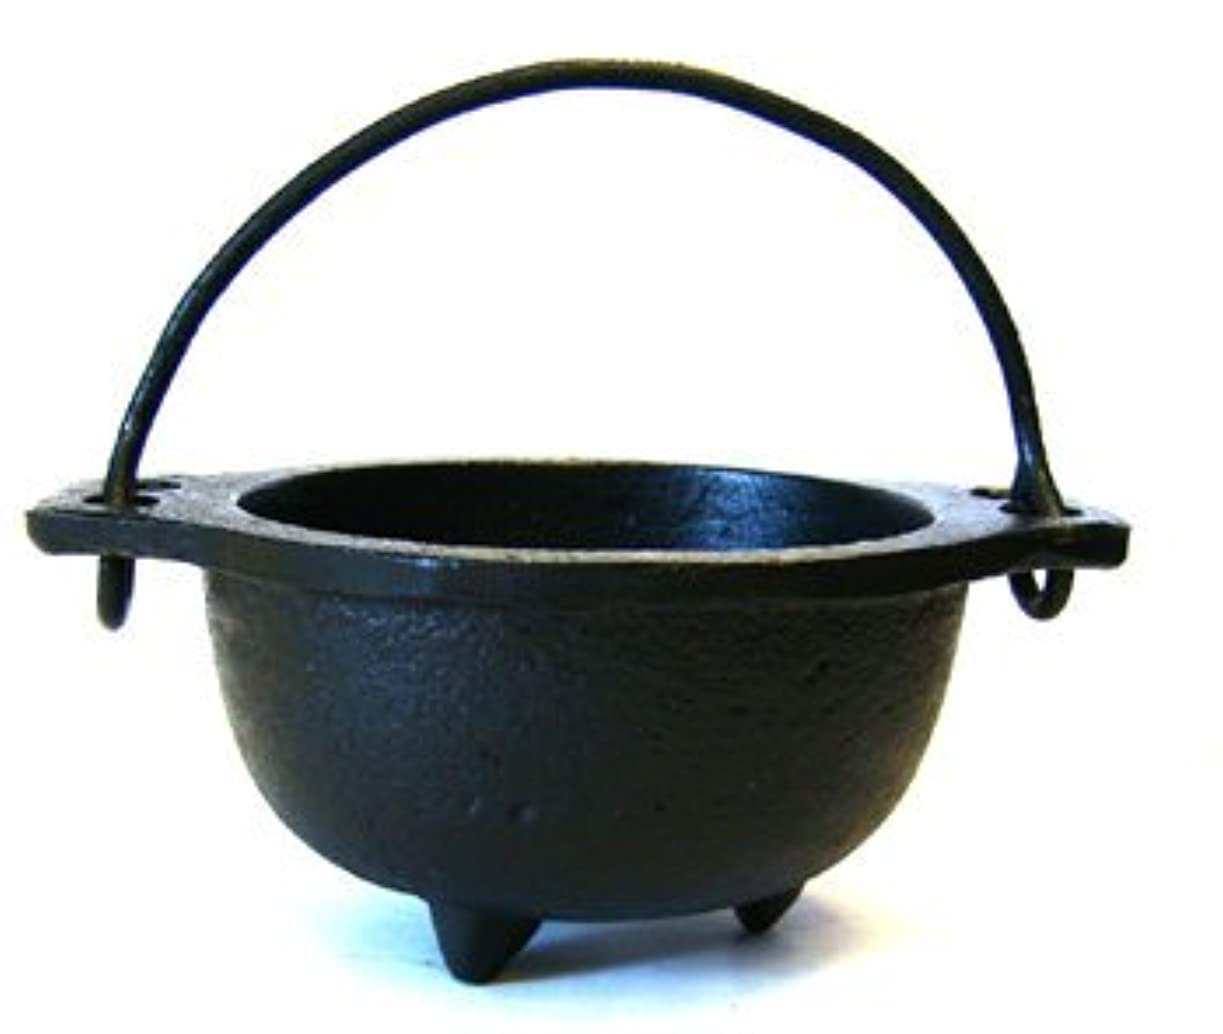 フォーラム単にストライク(6.4cm Diameter) - Cast Iron Cauldron w/handle, ideal for smudging, incense burning, ritual purpose, decoration, candle holder, etc. (10cm Diameter Handle to Handle, 6.4cm Inside Diameter)